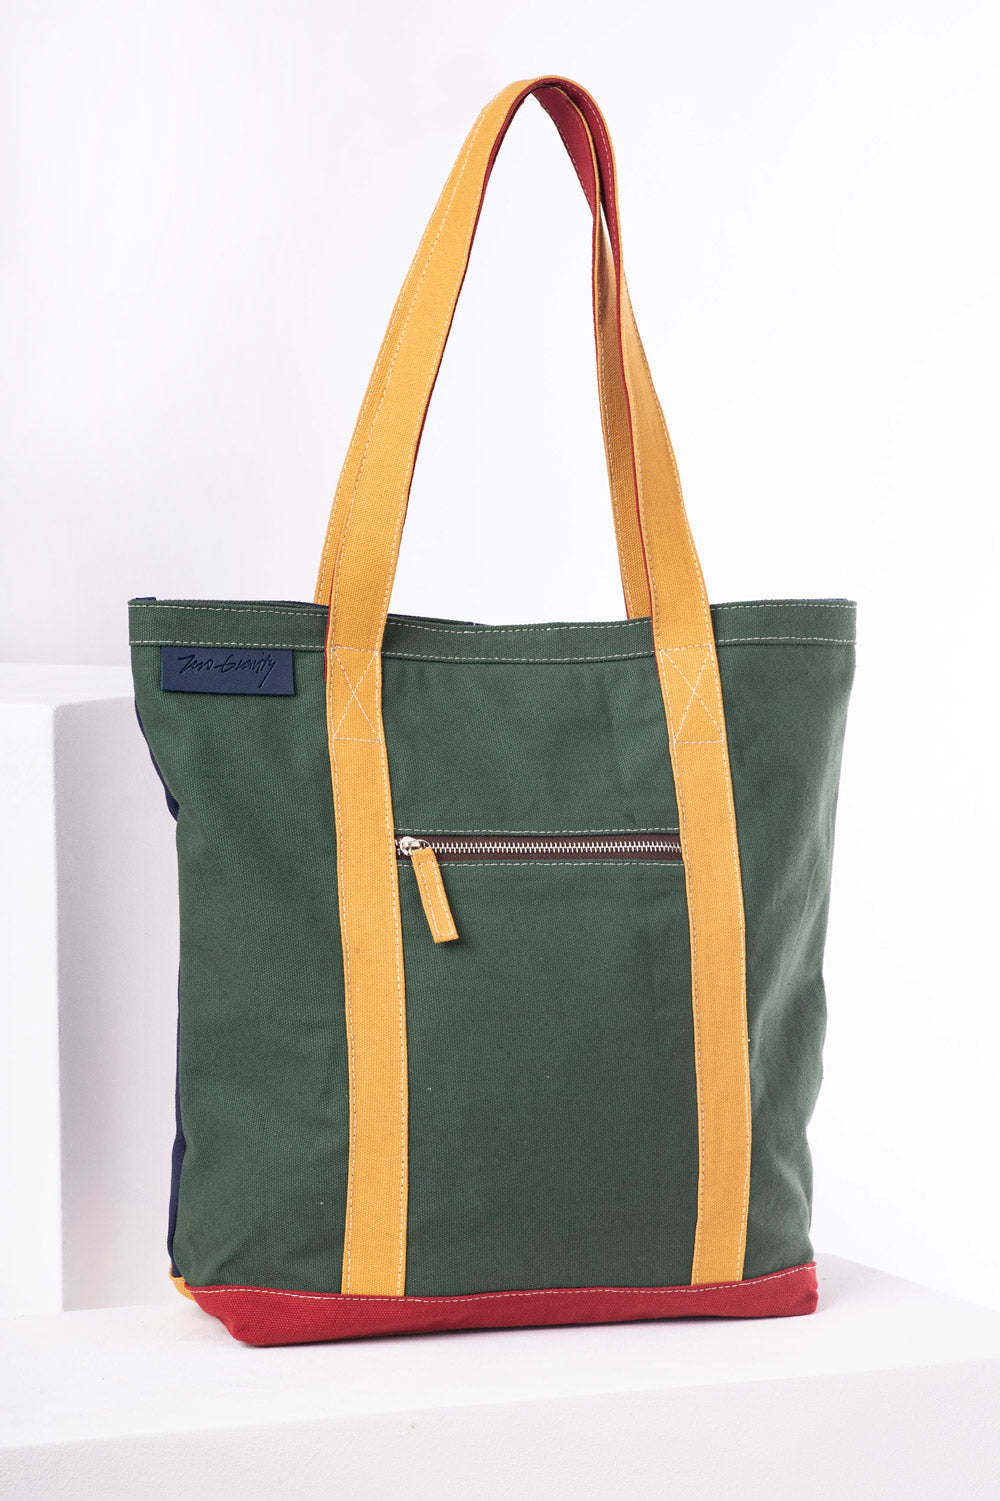 Retro Sunday Tote Bag